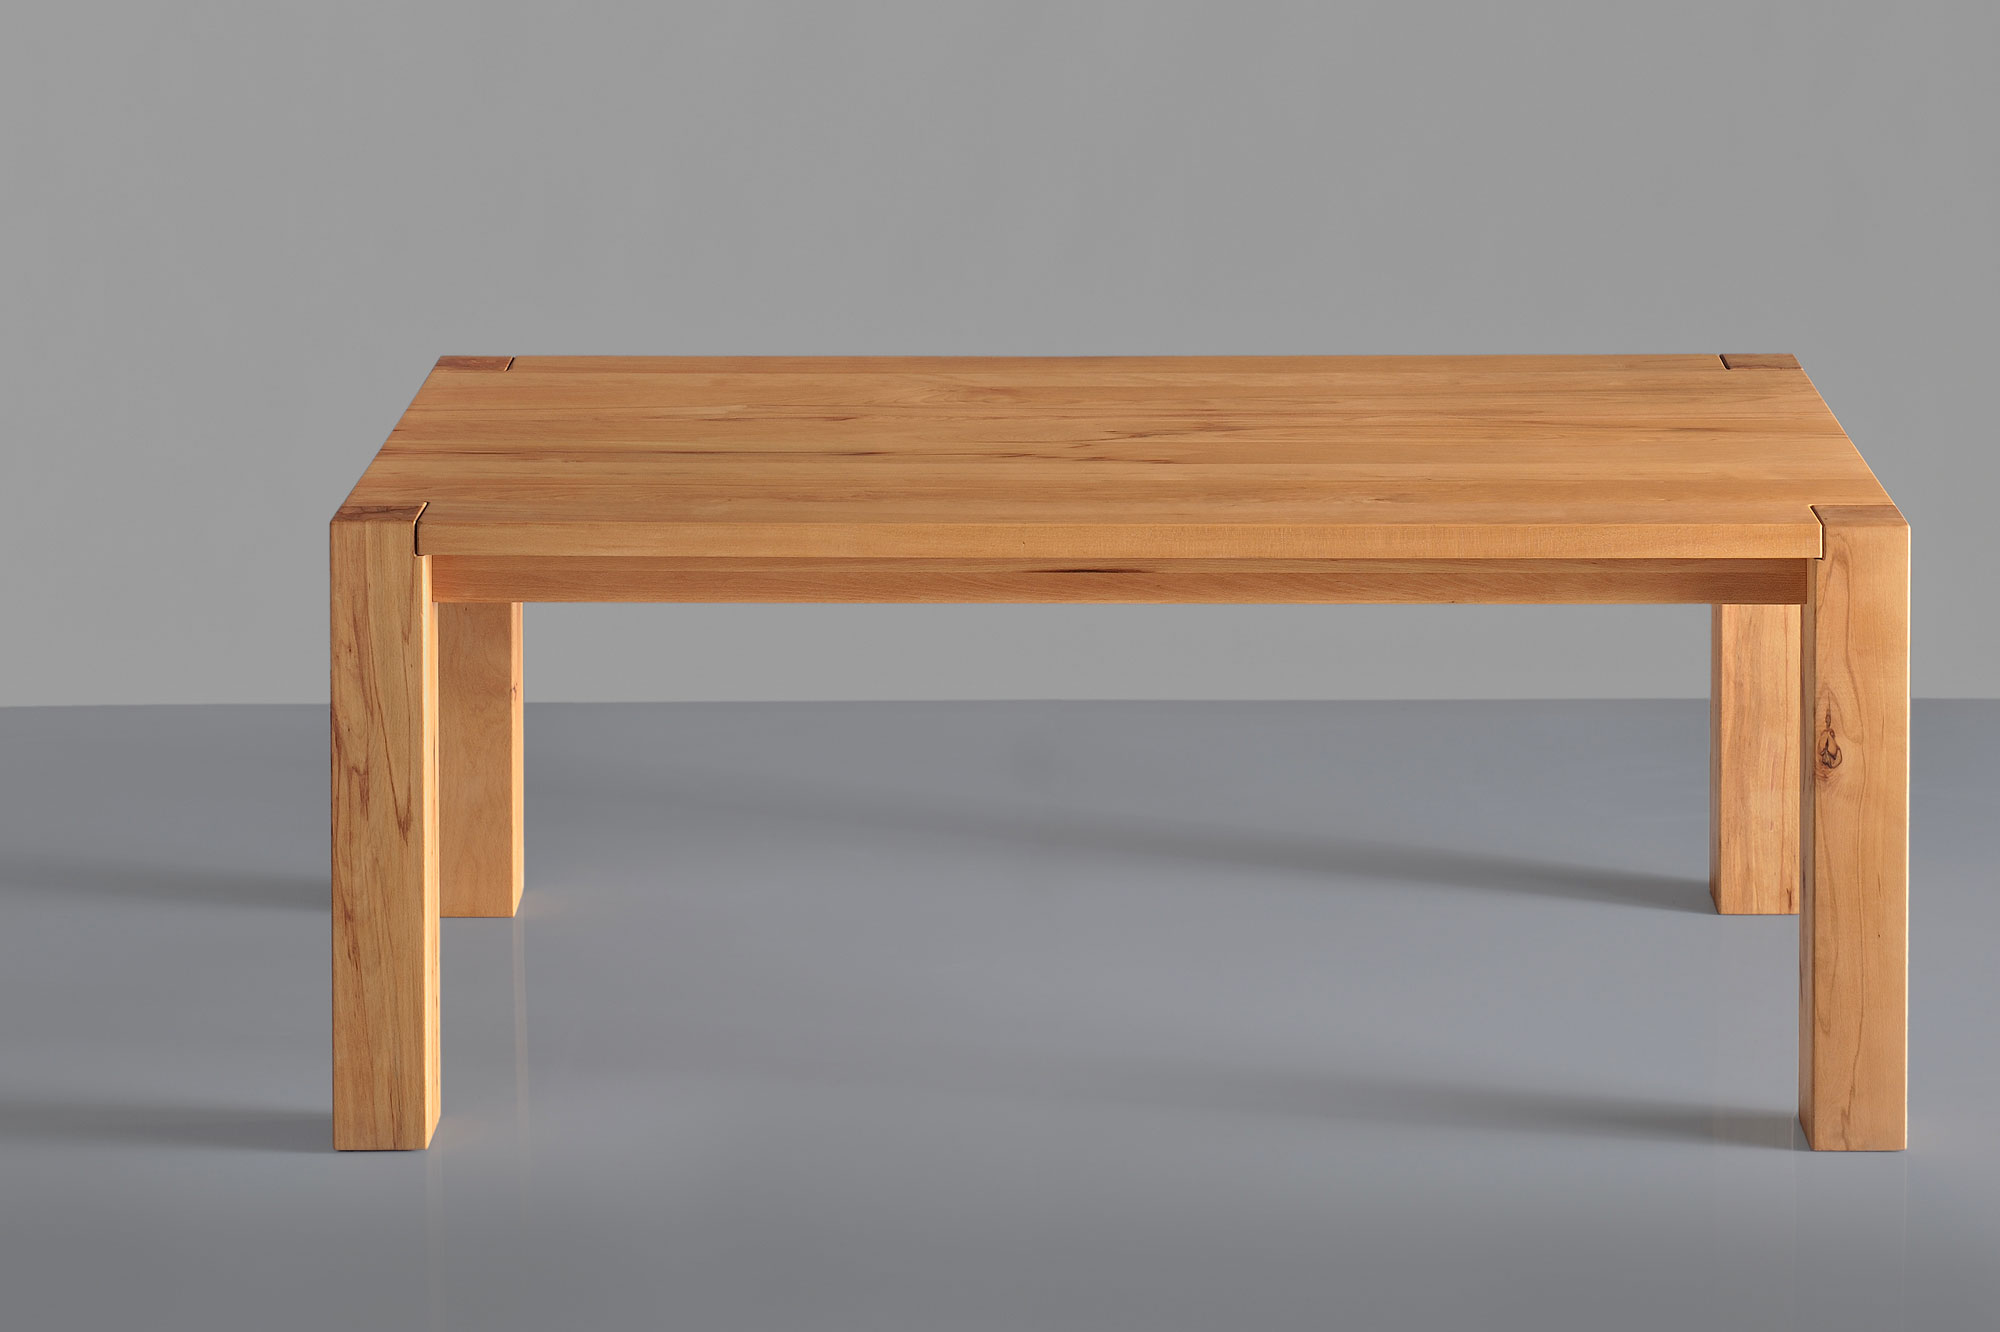 Rustic Oak Table TAURUS 4 B11X11 t4b11KBU1621 custom made in solid wood by vitamin design